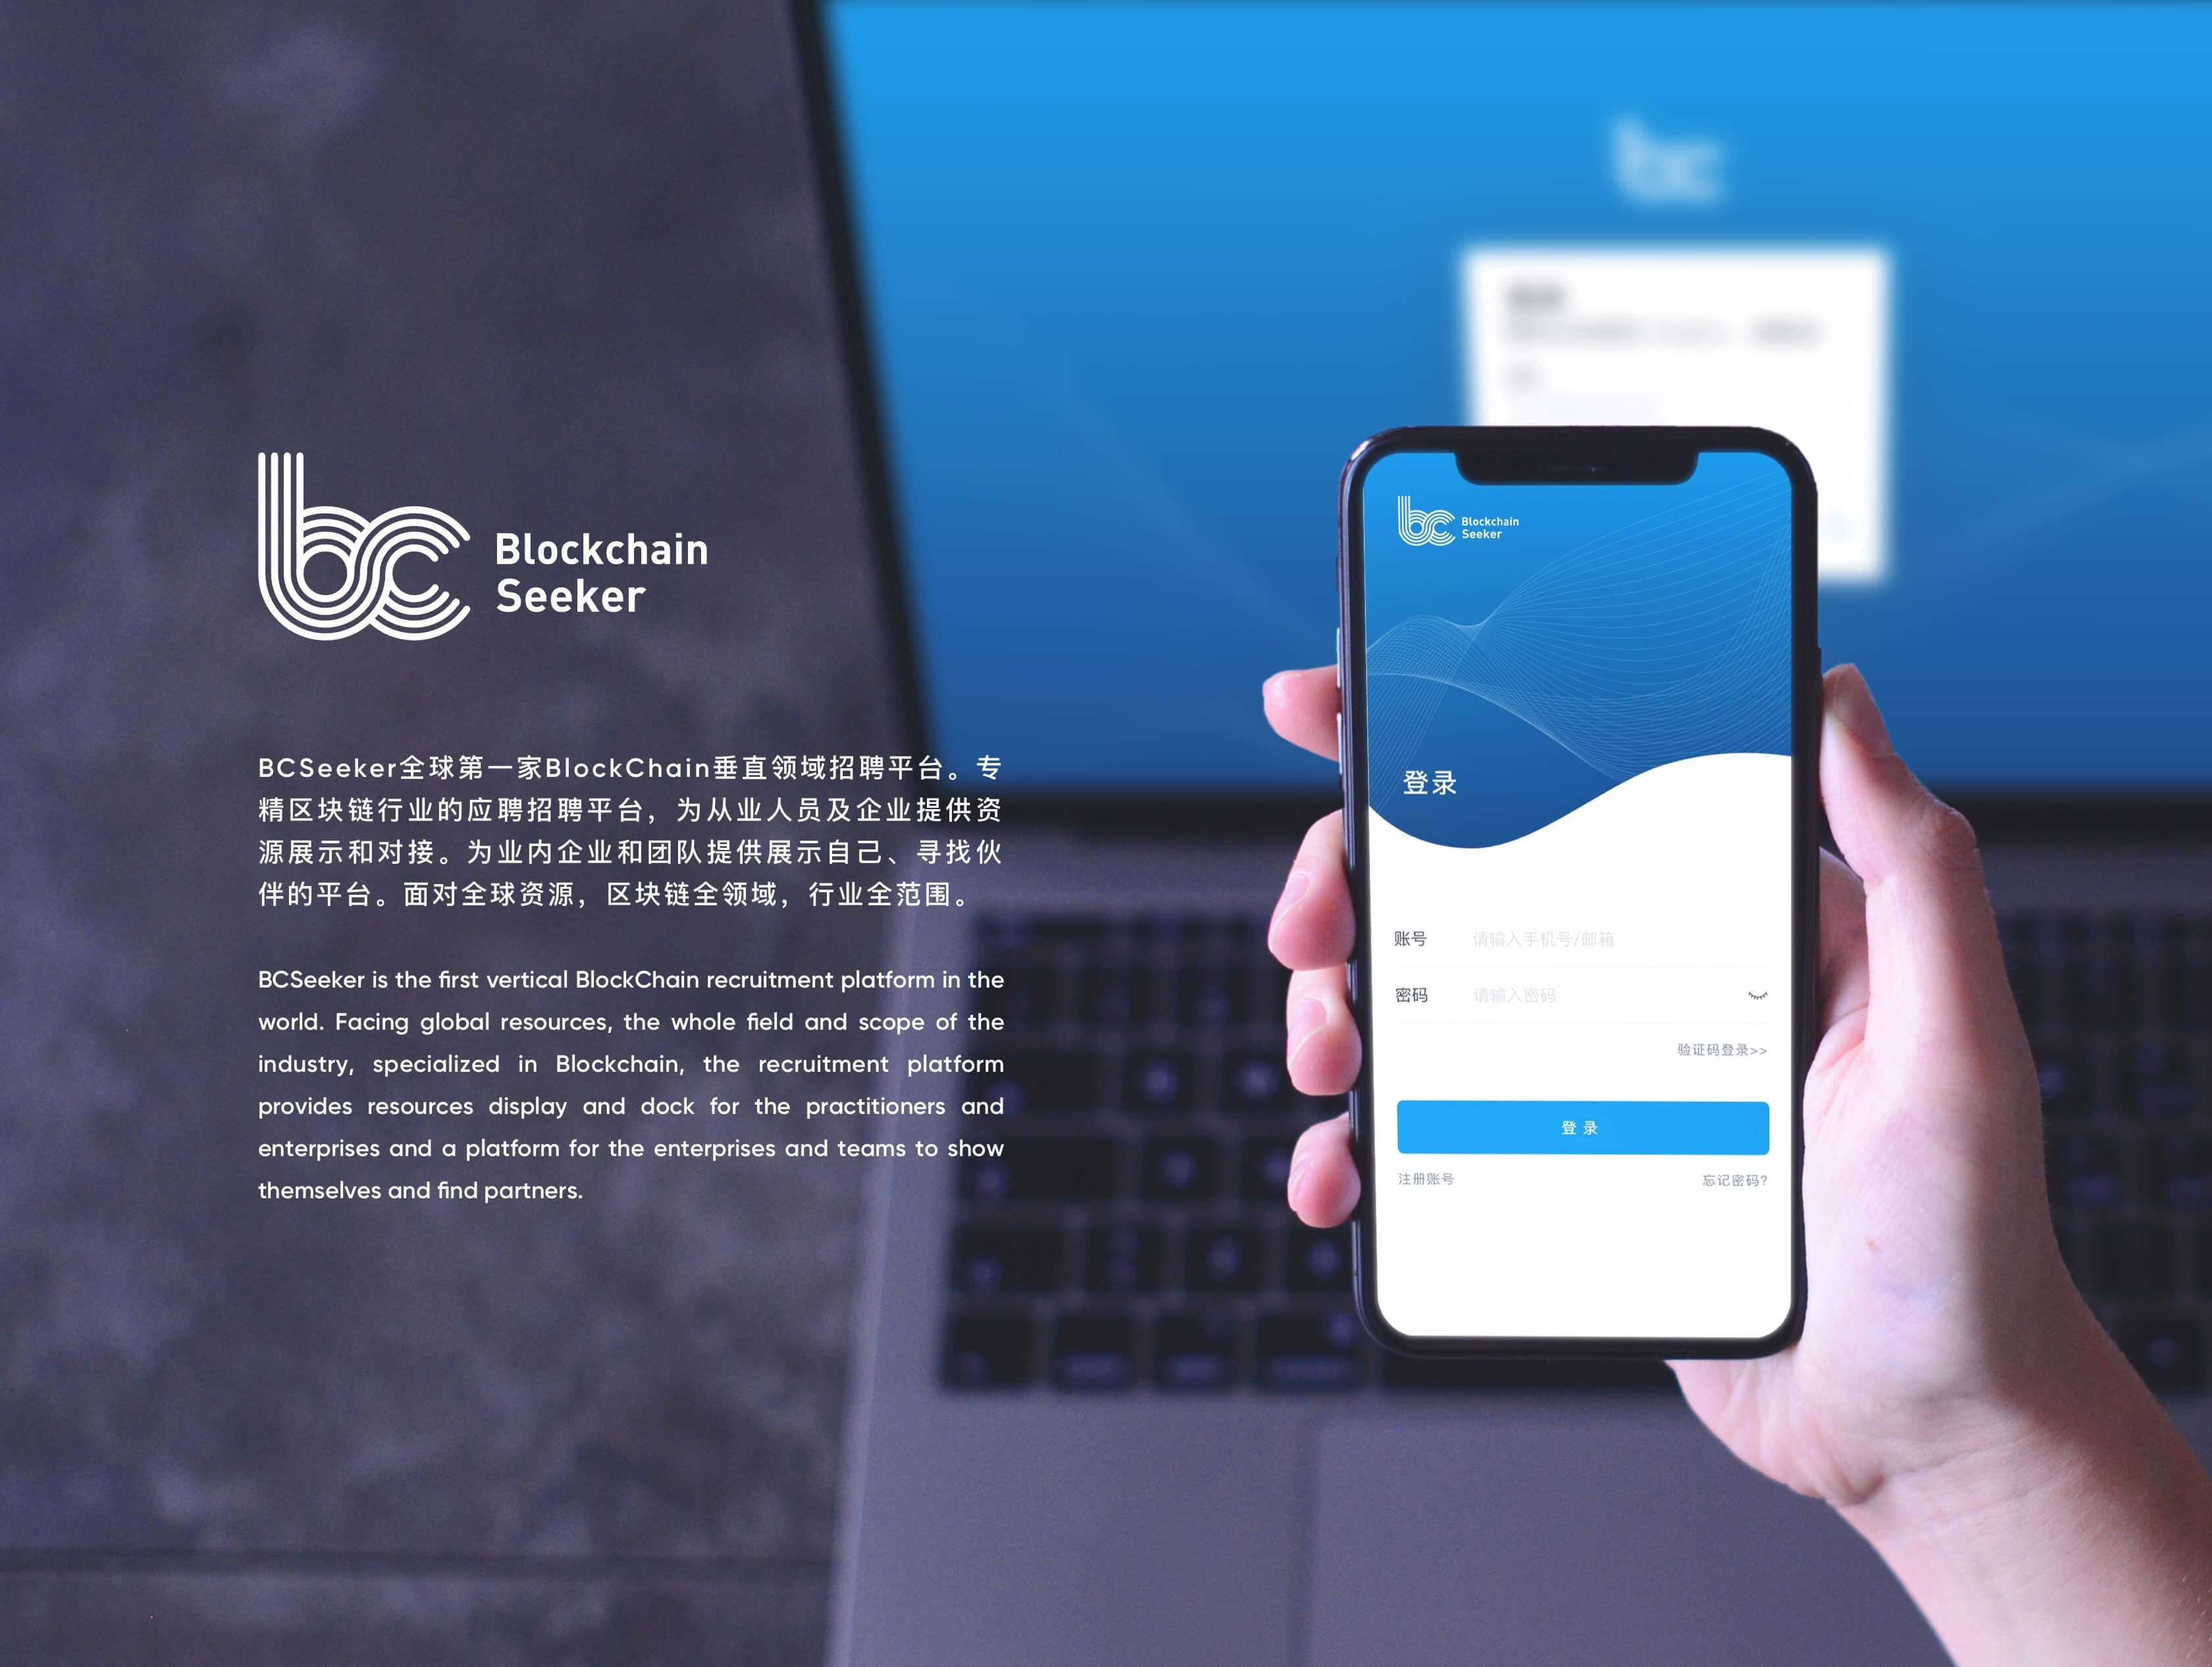 BCSeeker全球第一家BlockChain垂直领域招聘平台。专精区块链行业的应聘招聘平台,为从业人员及企业提供资源展示和对接。为业内企业和团队提供展示自己、寻找伙伴的平台。面对全球资源,区块链全领域,行业全范围。 BCSeeker is the first vertical BlockChain recruitment platform in the world. Facing global resources, the whole field and scope of the industry, specialized in Blockchain, the recruitment platform provides resources display and dock for the practitioners and enterprises and a platform for the enterprises and teams to show themselves and find partners.